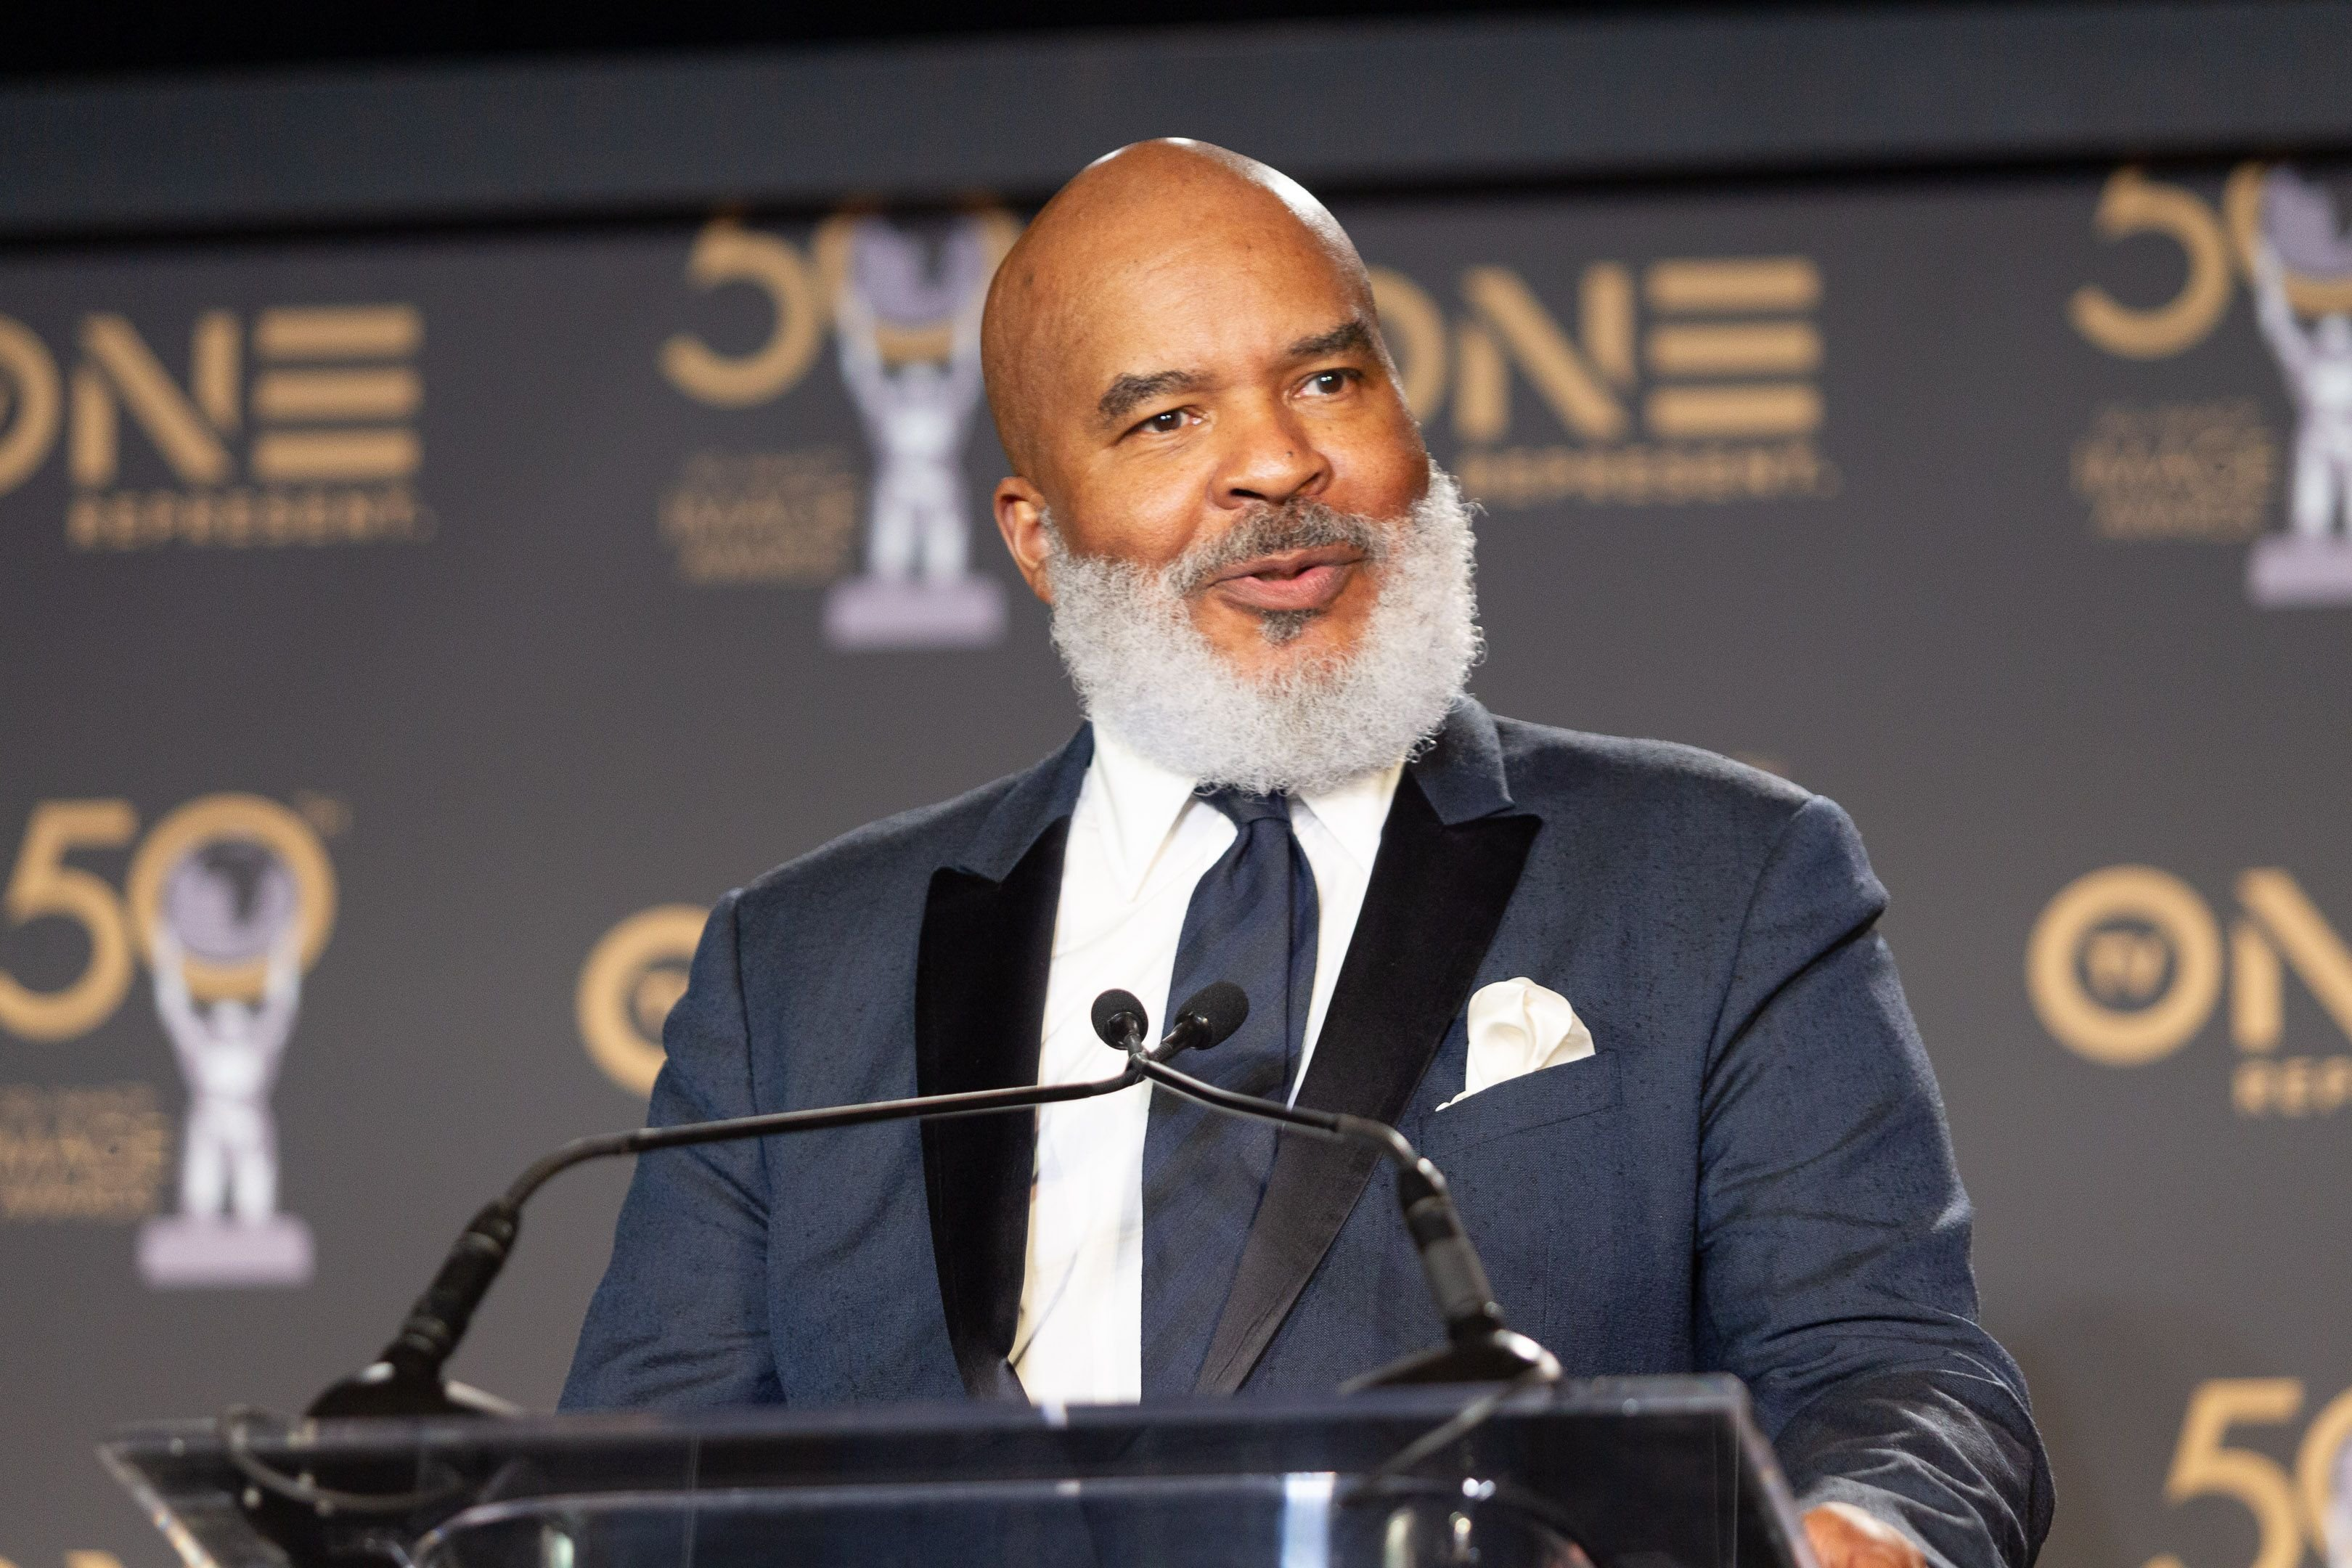 David Alan Grier at the 50th NAACP Image Awards in March 30th 2019 in Hollywood | Source: Shutterstock